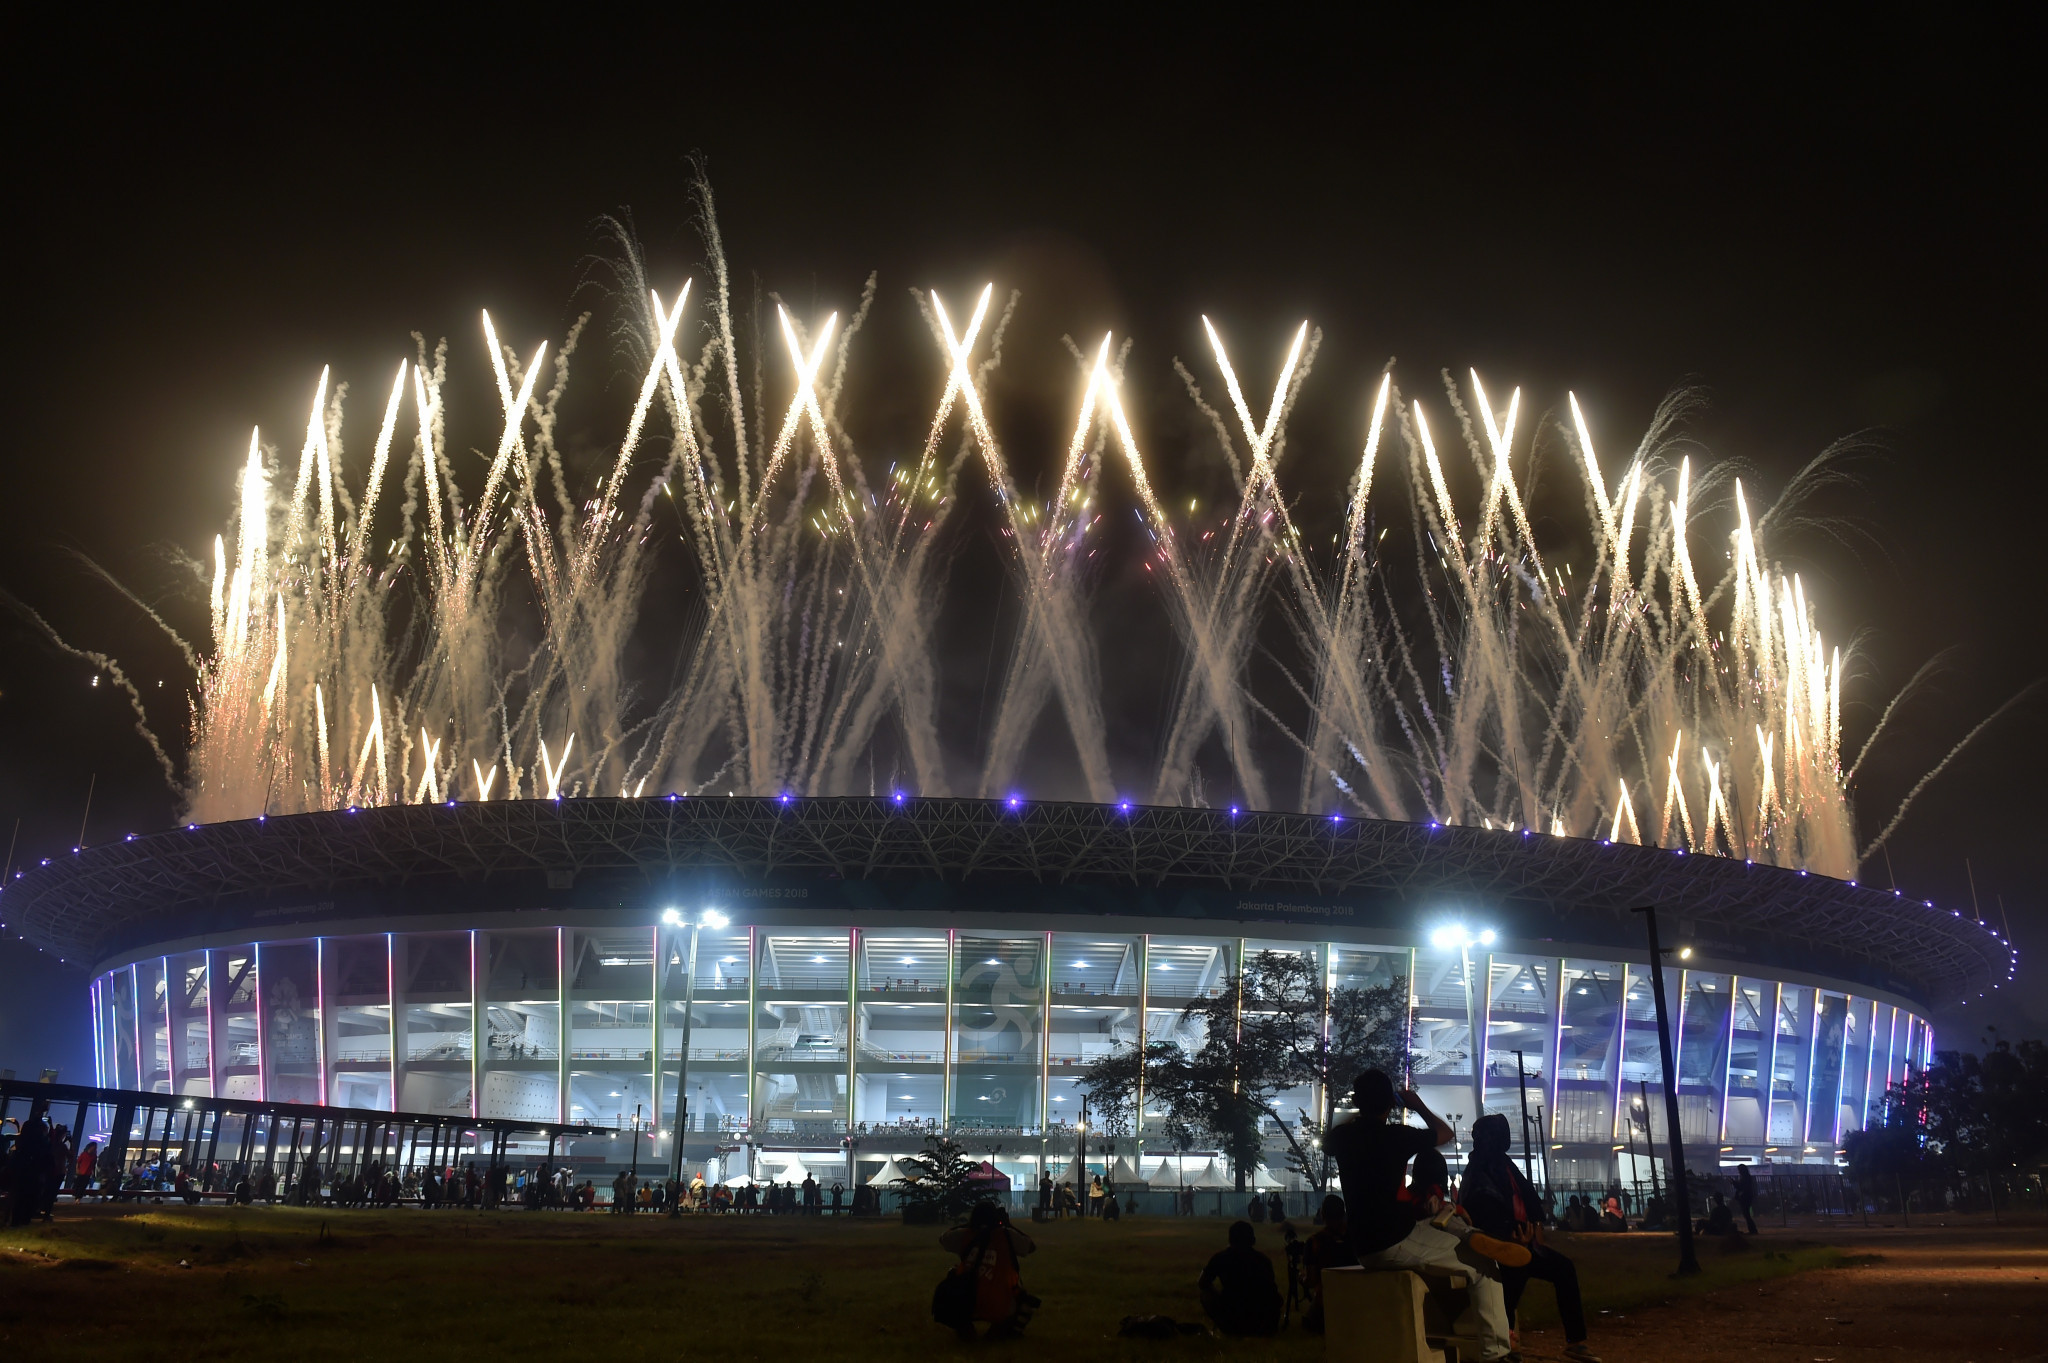 Tourist spending during 2018 Asian Games reached nearly $250 million, survey reveals